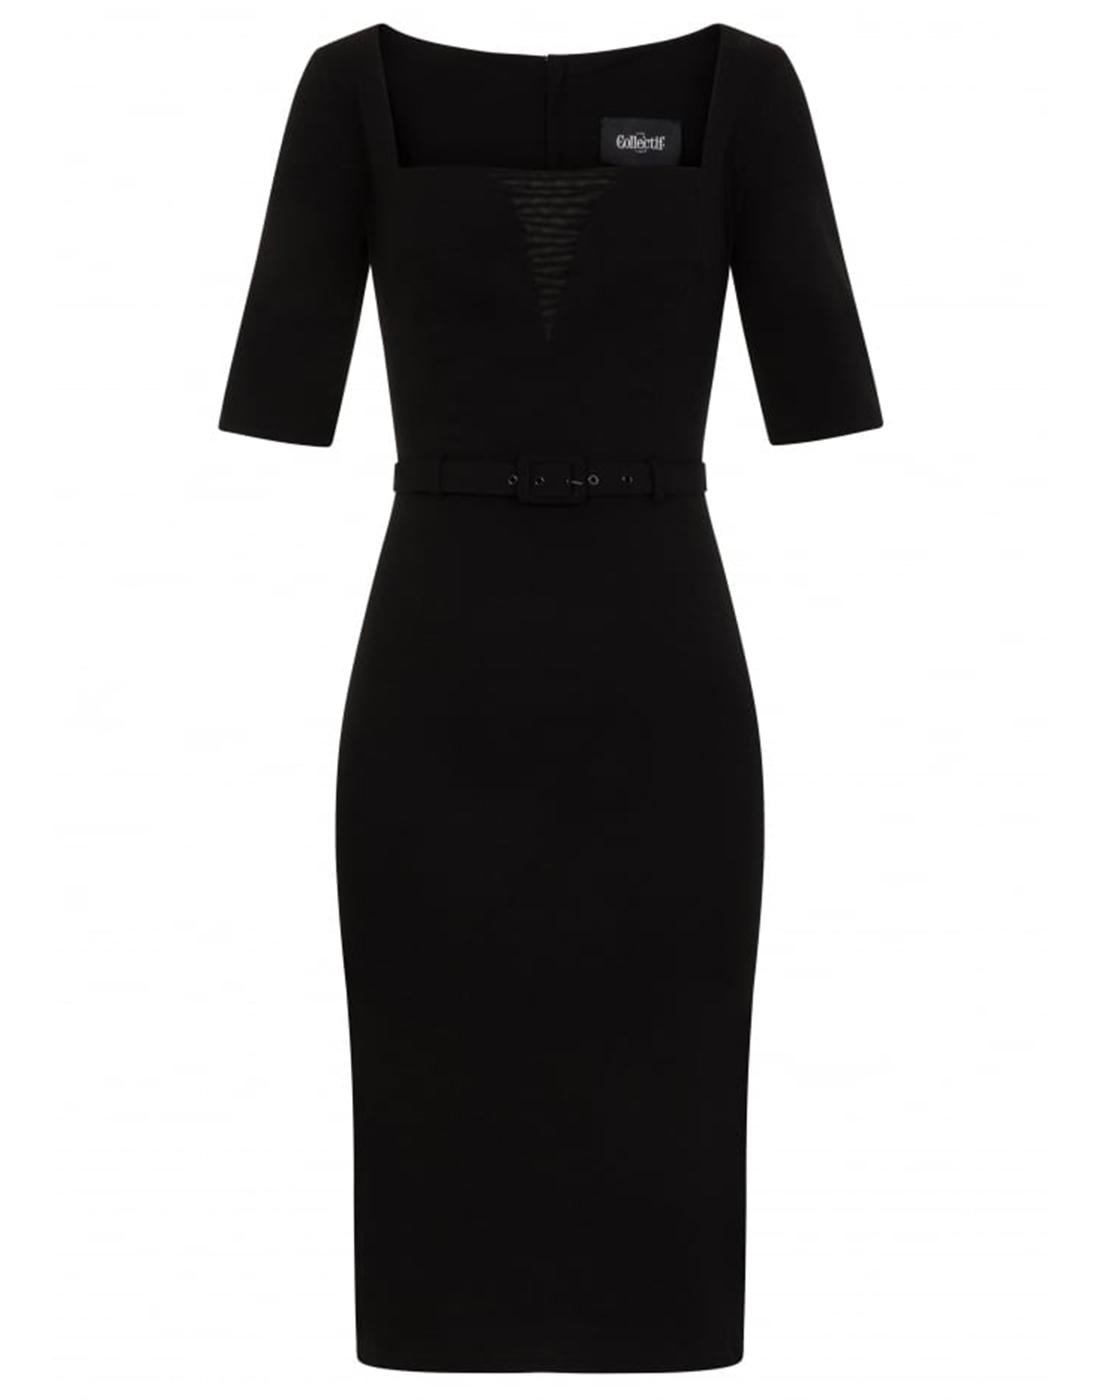 Reagan COLLECTIF Retro 50s Pencil Dress in Black